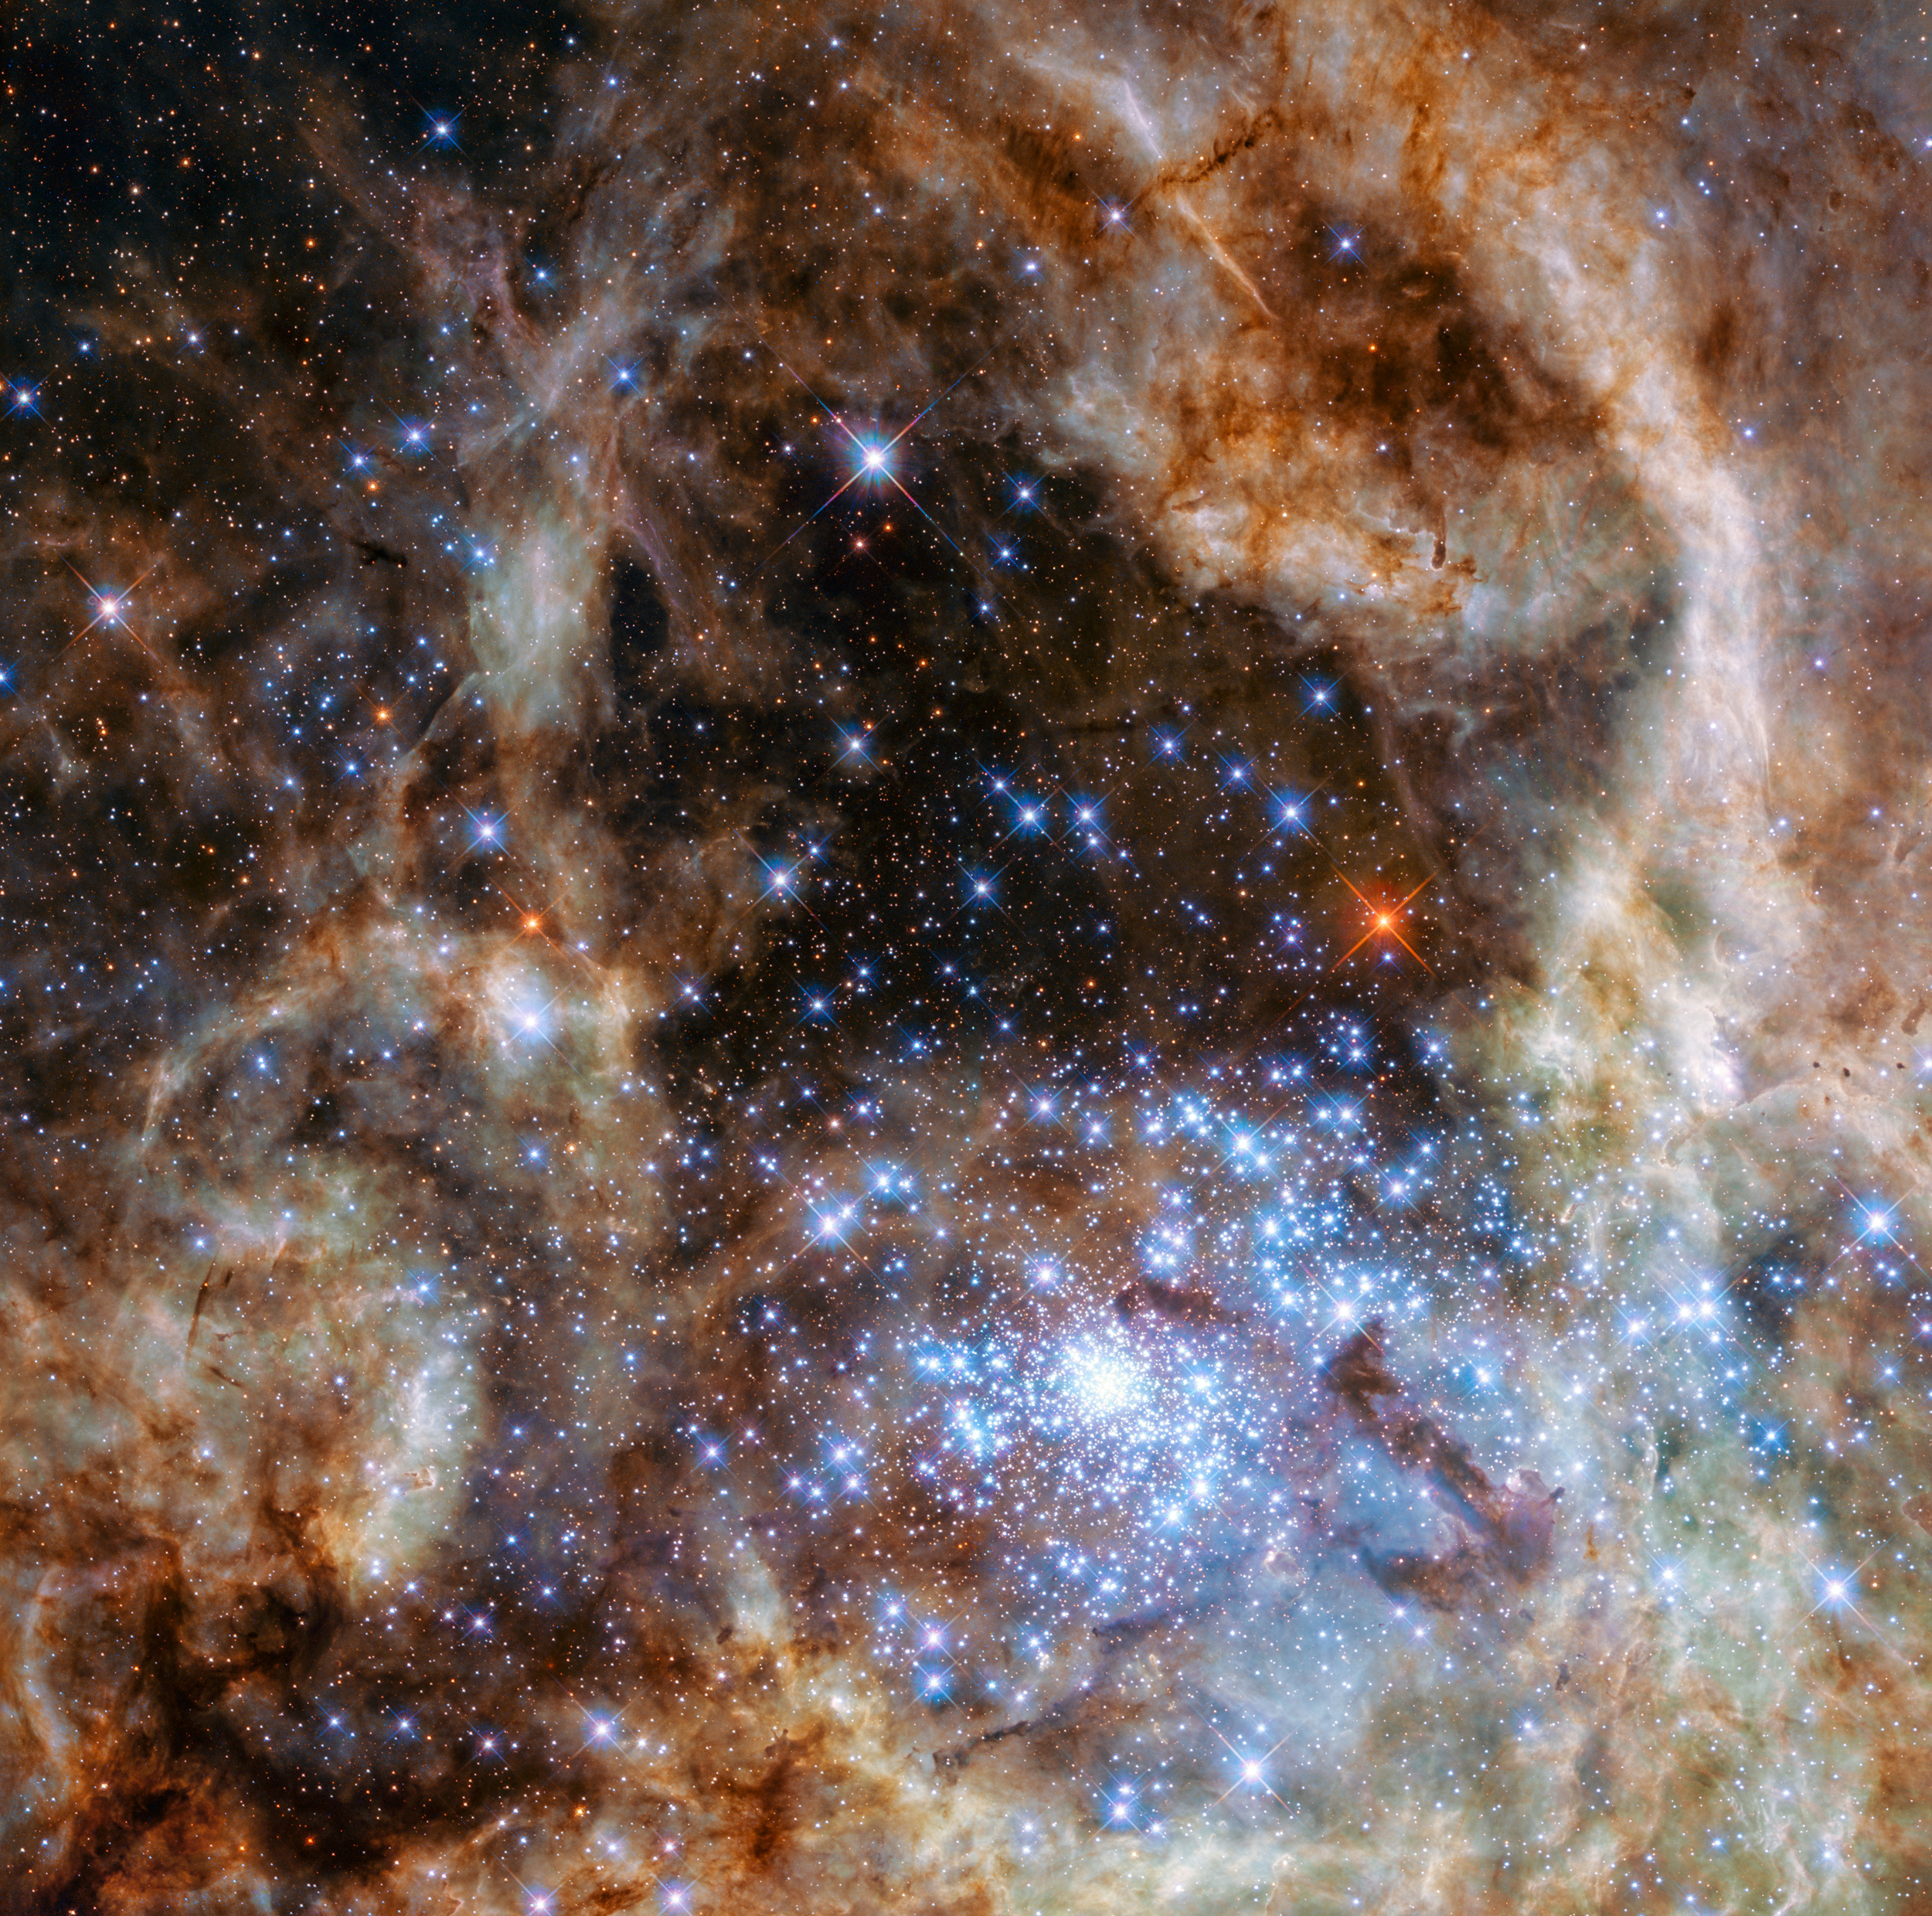 This Hubble image shows the central region of the Tarantula Nebula in the Large Magellanic Cloud. The young and dense star cluster R136 can be seen at the lower right of the image. This cluster contains hundreds of young blue stars, among them the most massive star detected in the universe so far. - Image   Credits: NASA, ESA, P Crowther (University of Sheffield)